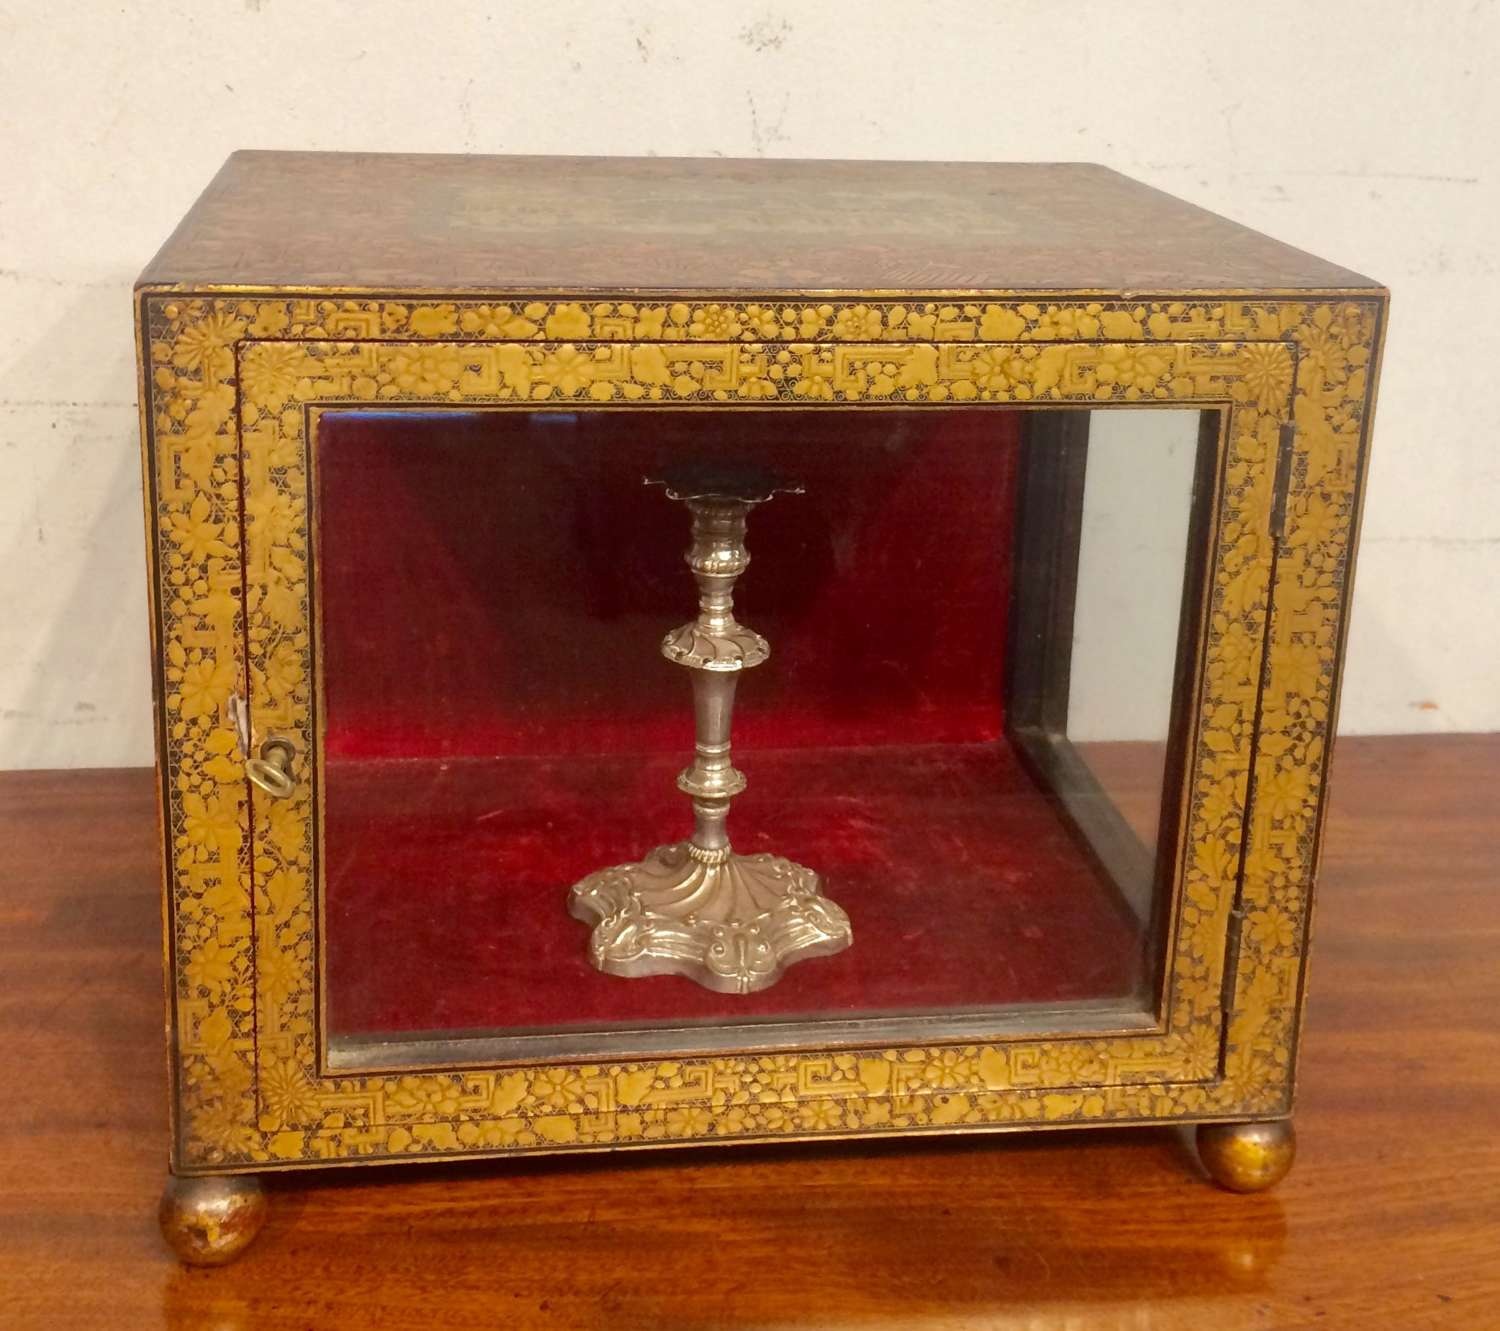 19th century Chinese Export lacquer table cabinet.